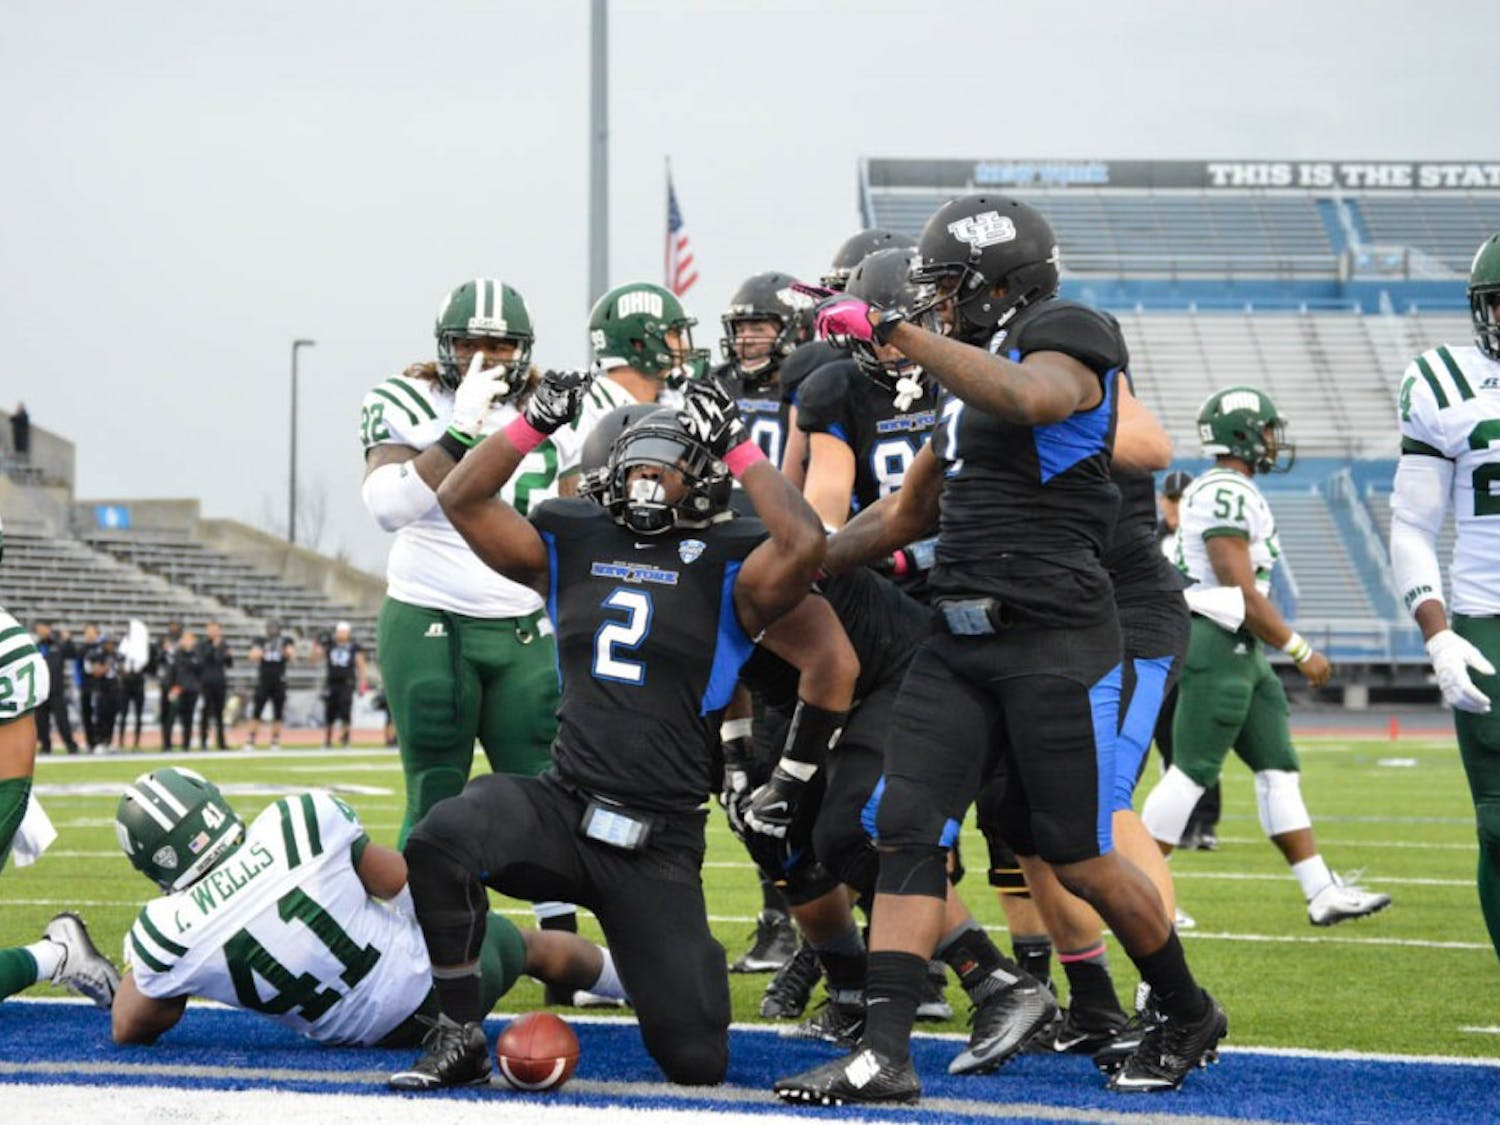 The football team (3-4, 1-2 Mid-American Conference) defeated Ohio (5-3, 2-2 MAC) 41-17 and captured their first conference win of the Leipold era at UB Stadium Saturday.